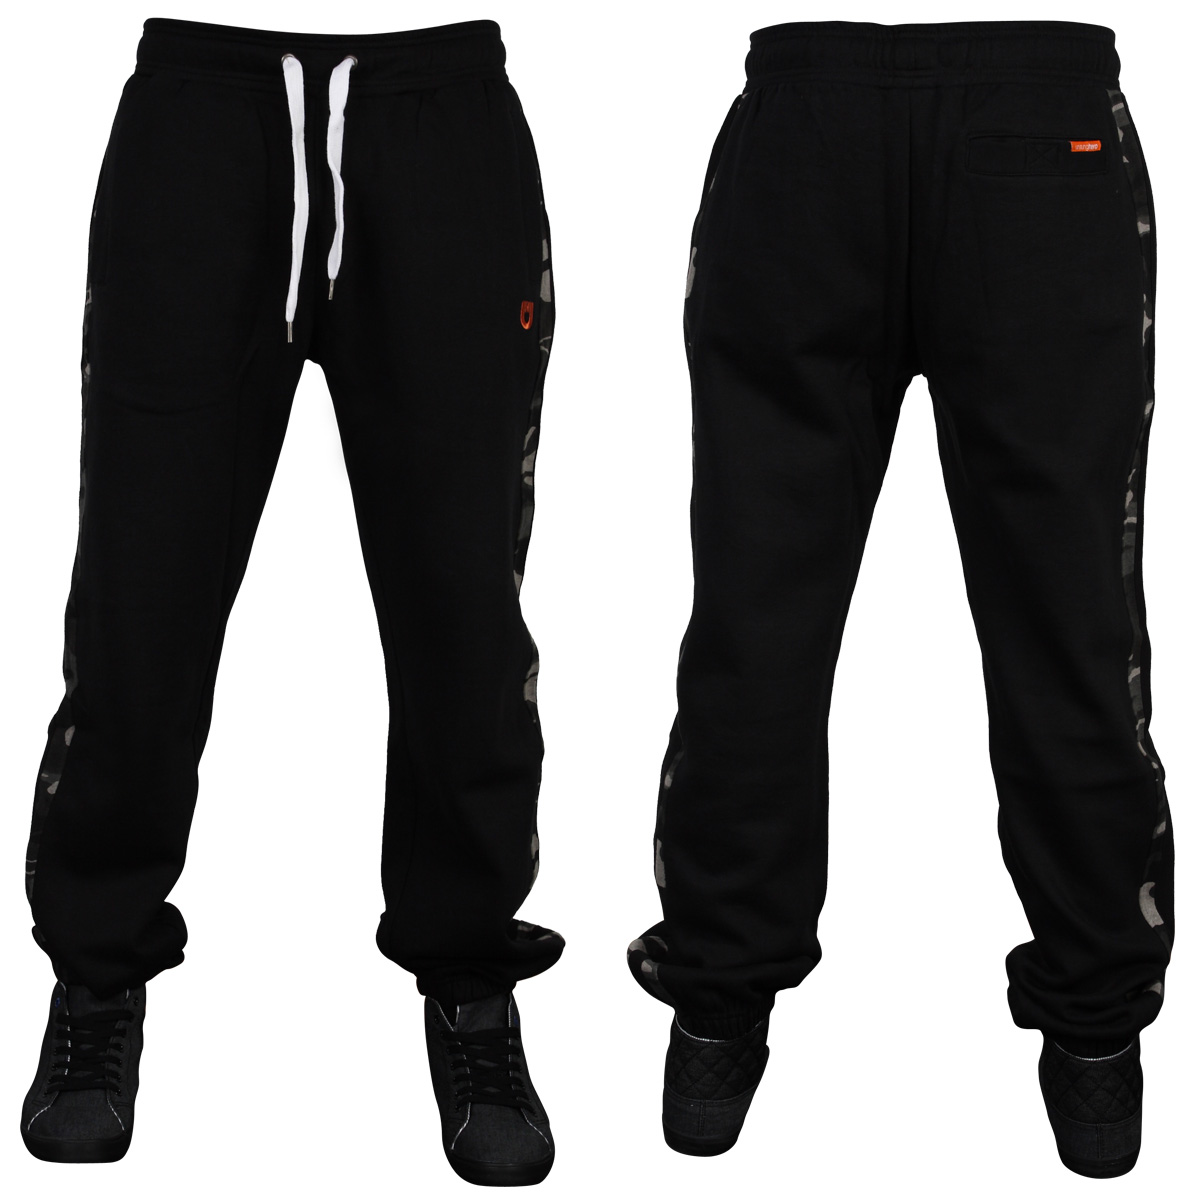 Mens Black Joggers Pants at Macy's come in all styles and sizes. Shop Men's Pants: Dress Pants, Chinos, Khakis, Black Joggers pants and more at Macy's! Macy's Presents: The Edit - A curated mix of fashion and inspiration Check It Out.